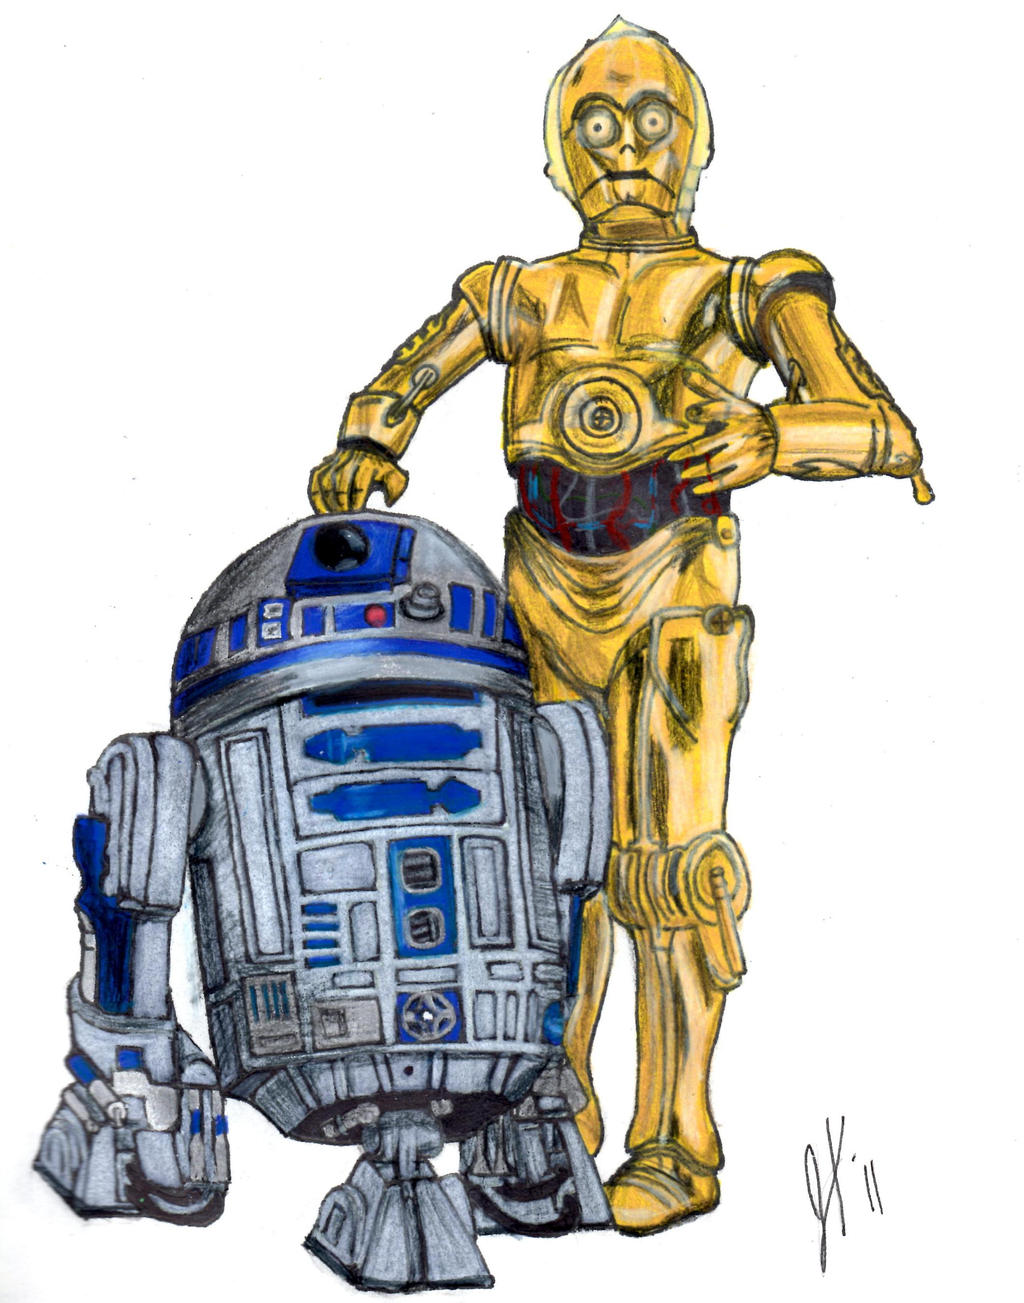 R2-D2 and C-3PO by GetItTogetherMerlin on DeviantArtR2d2 And C3po Drawing